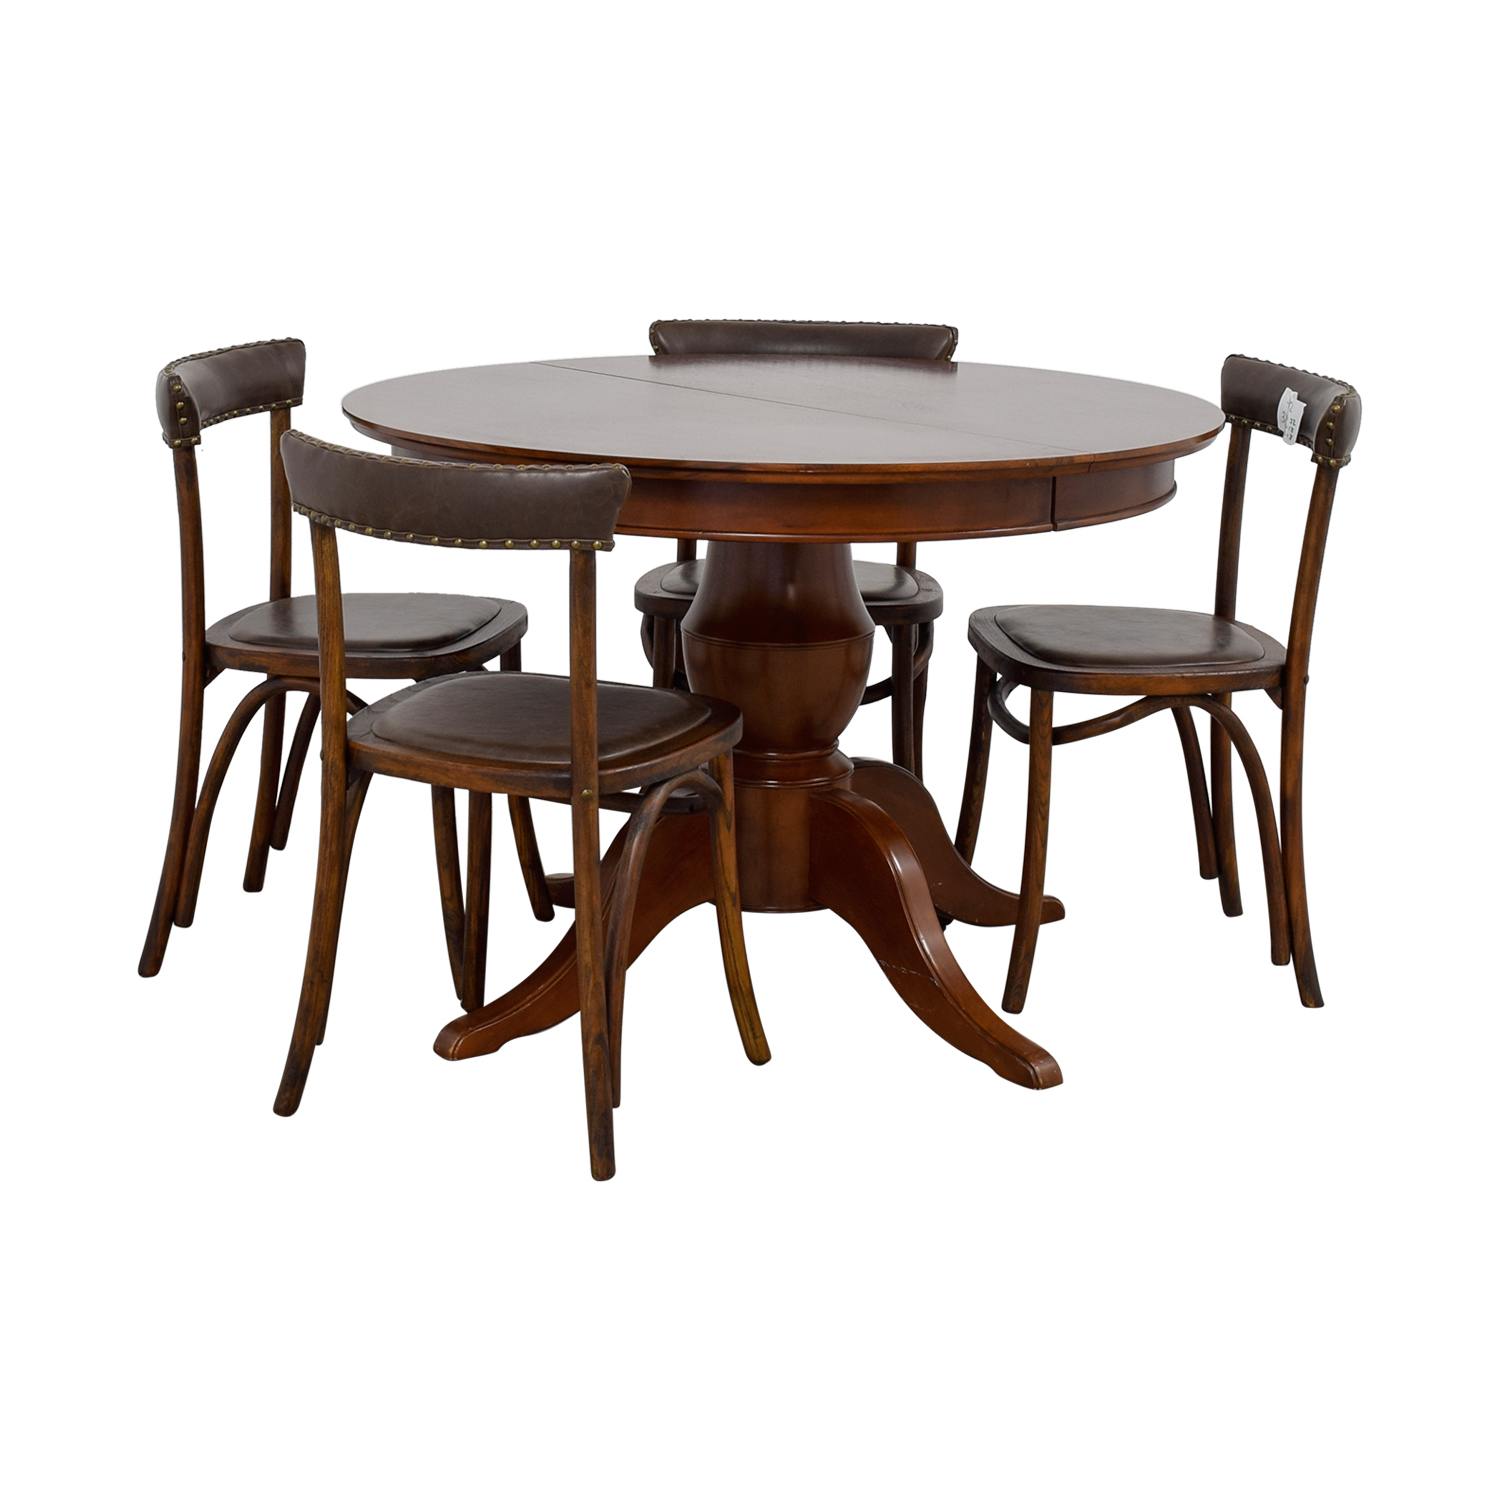 Pottery Barn Round Spindle Table with Extension Leaf Dining Set / Tables